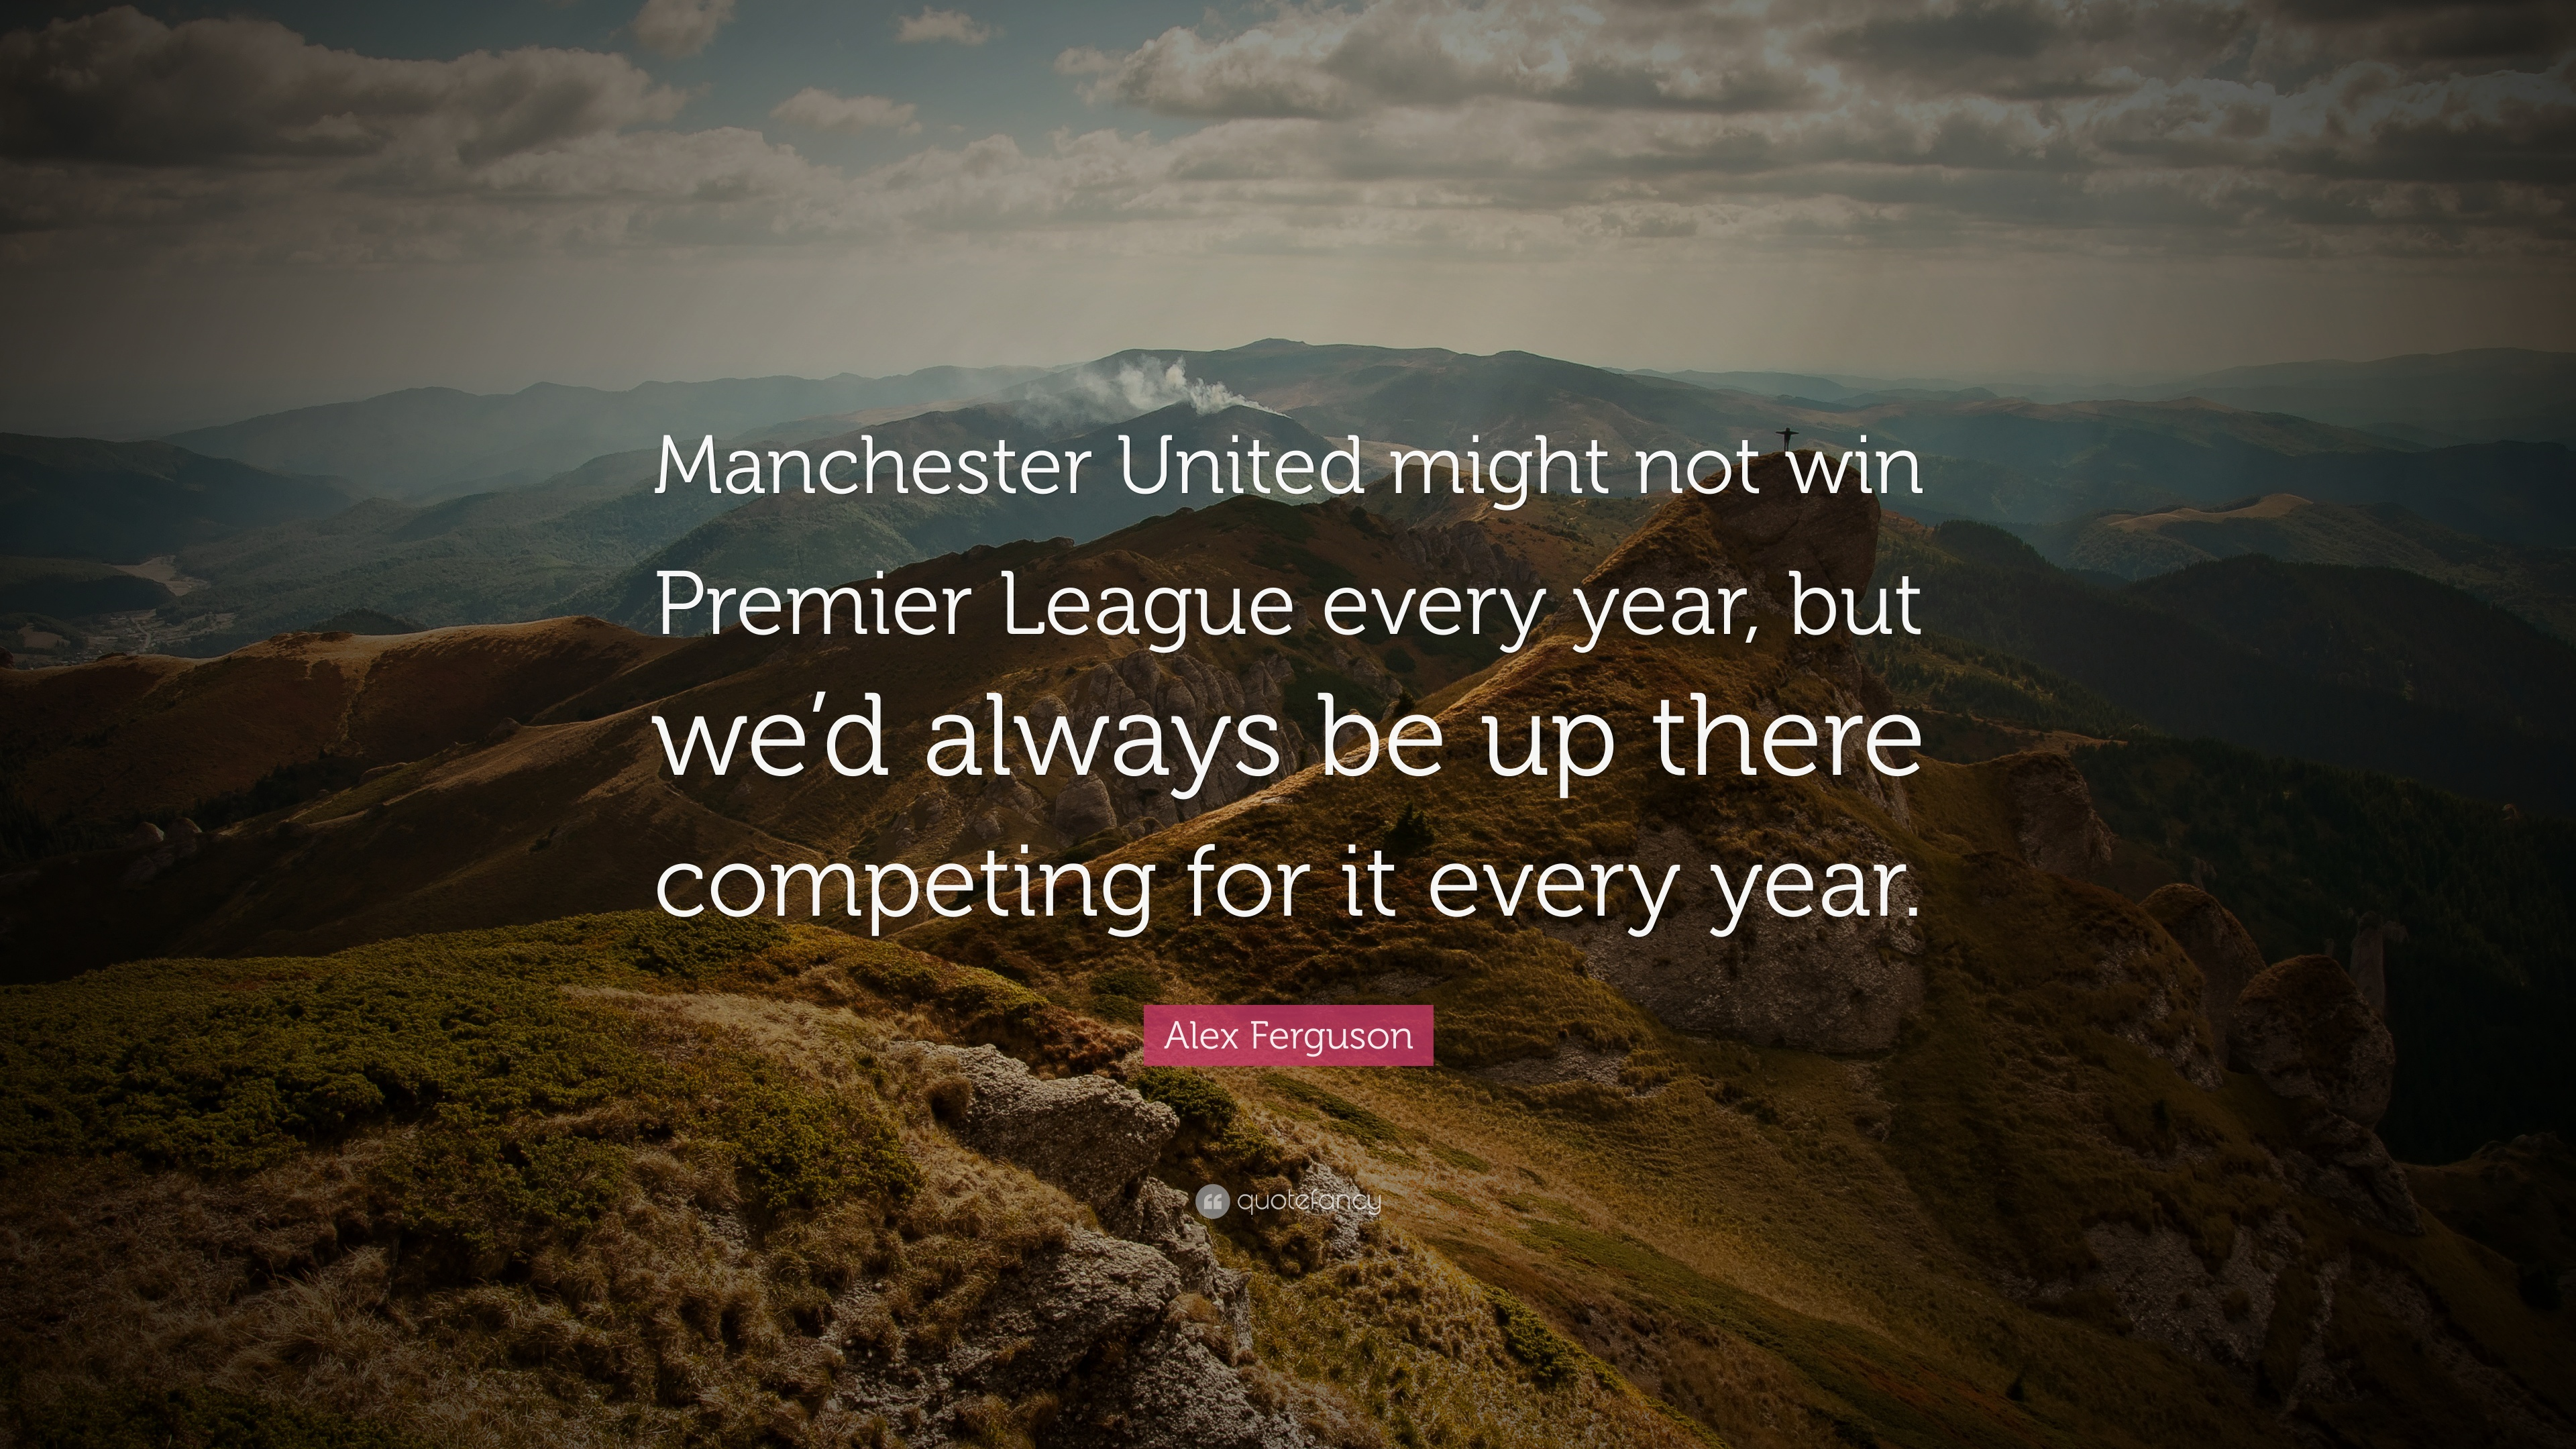 Alex Ferguson Quote Manchester United Might Not Win Premier League Every Year But We D Always Be Up There Competing For It Every Year 7 Wallpapers Quotefancy